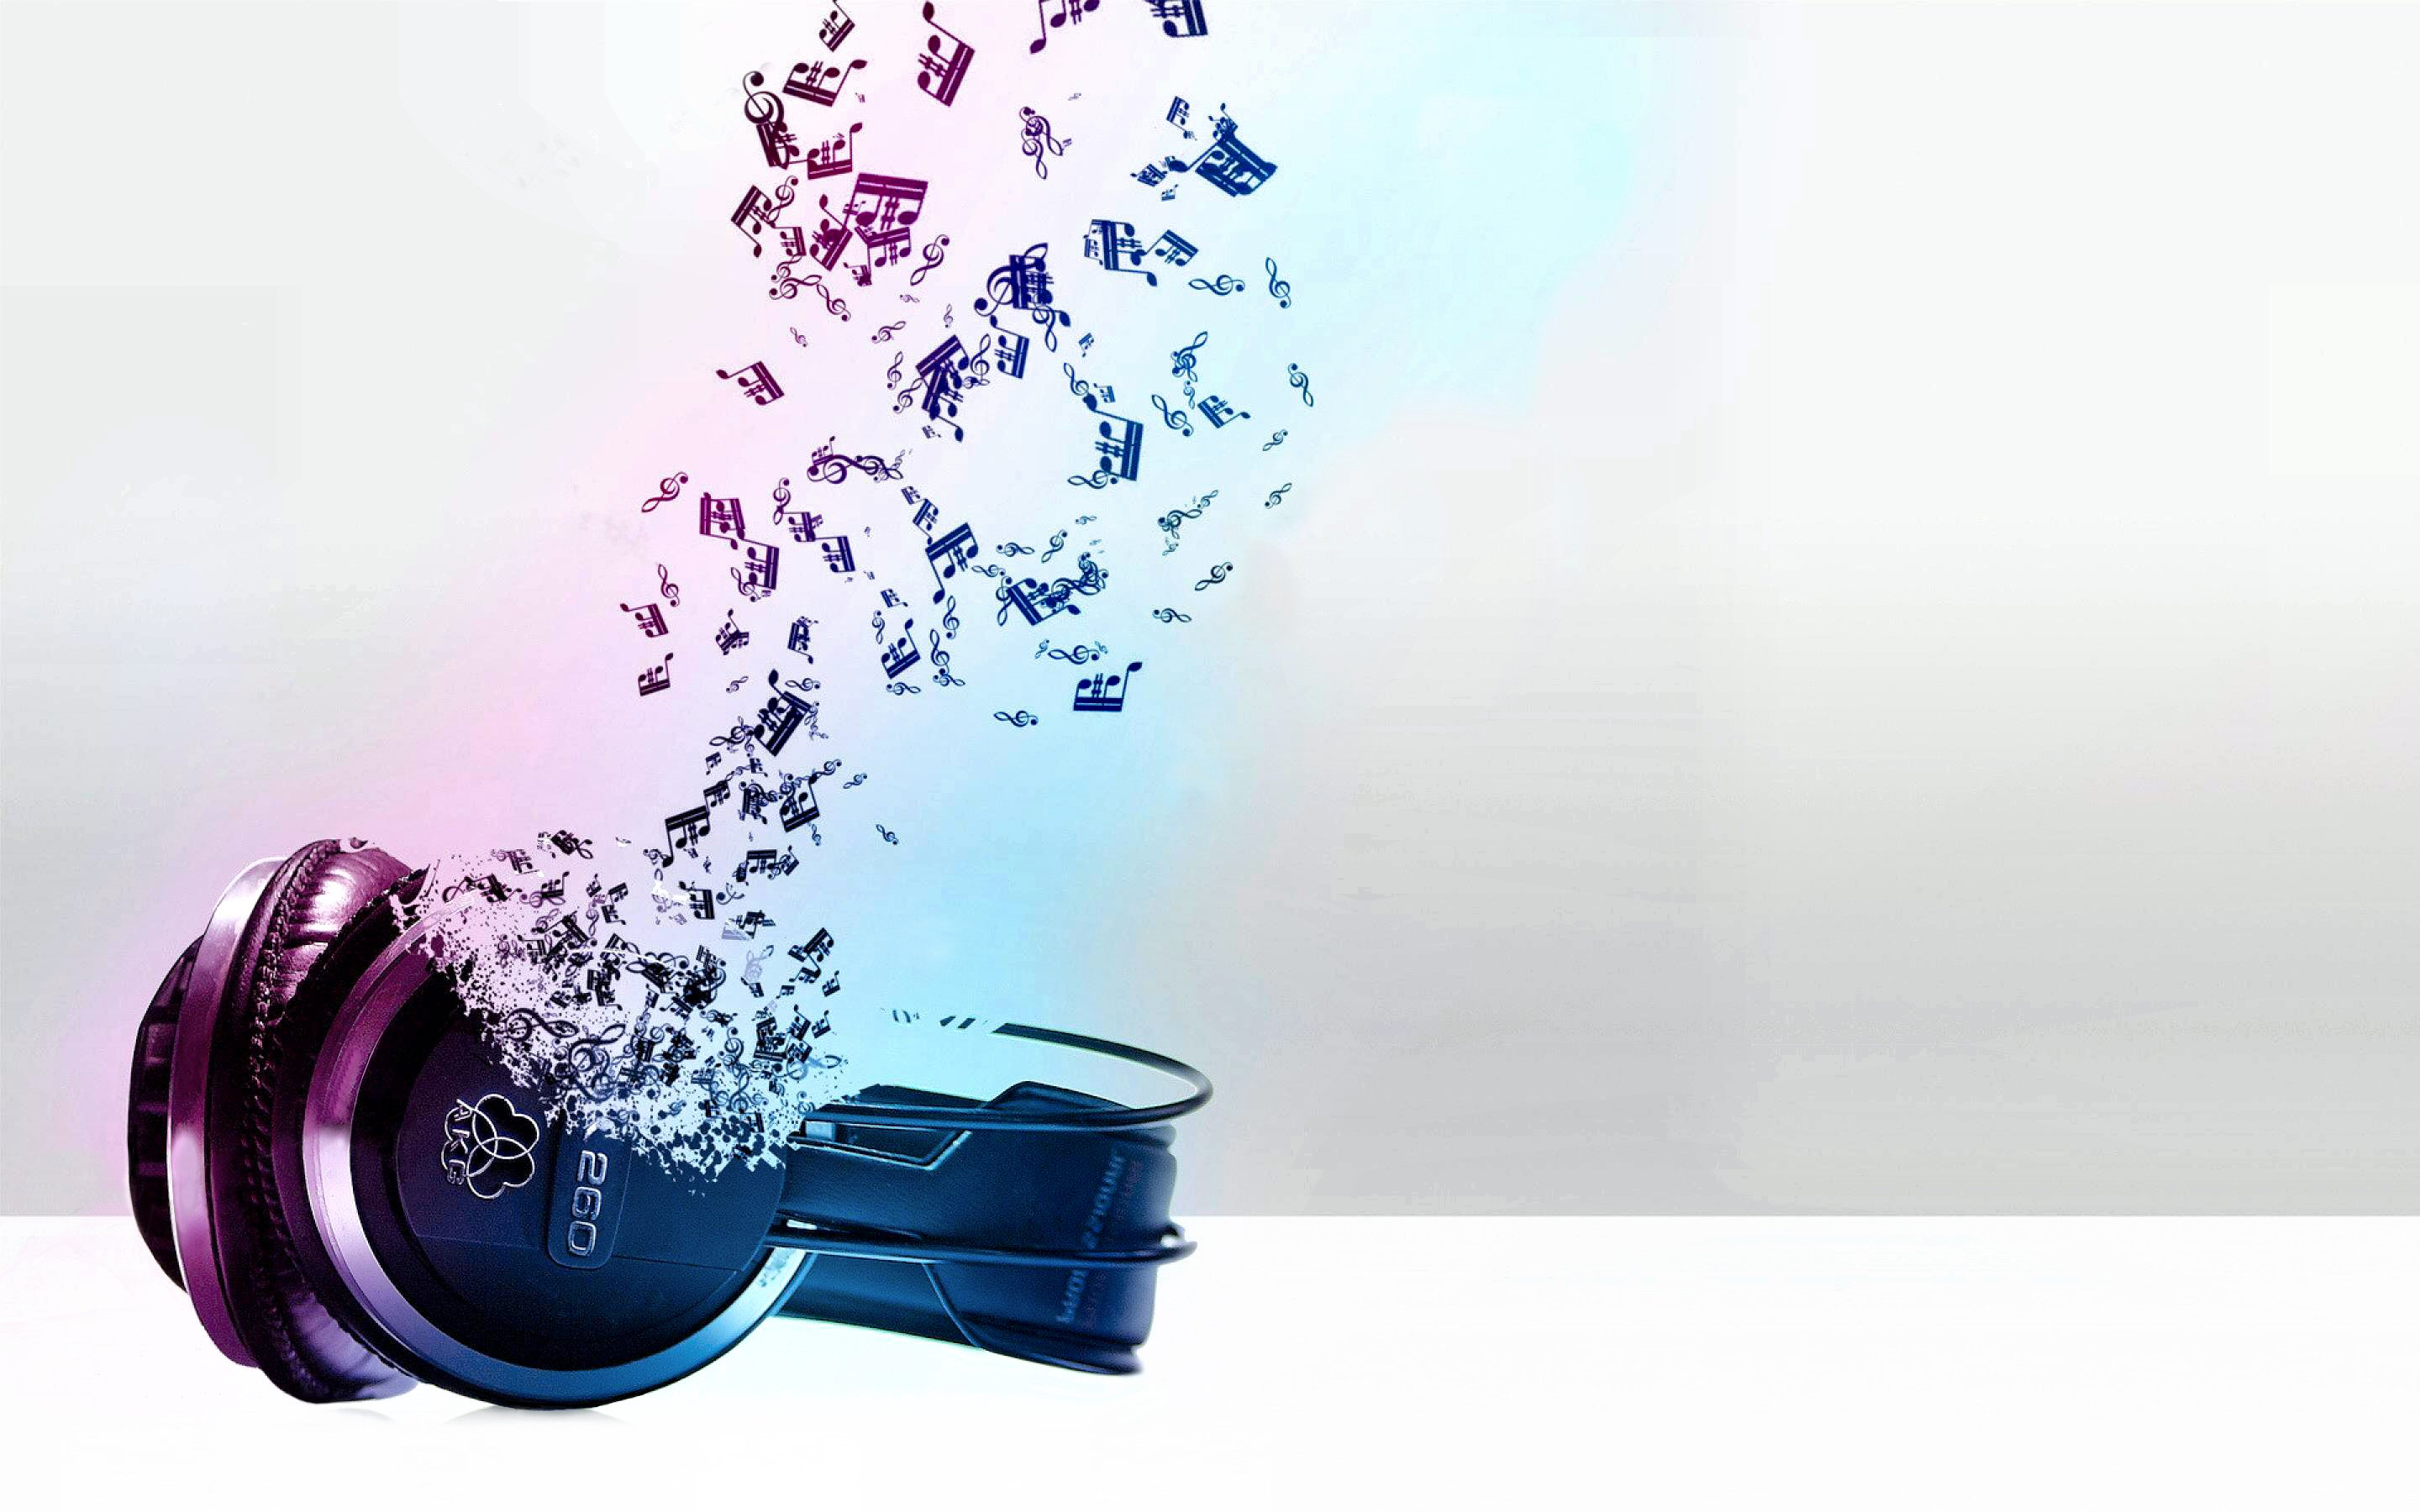 Wallpapers On Music